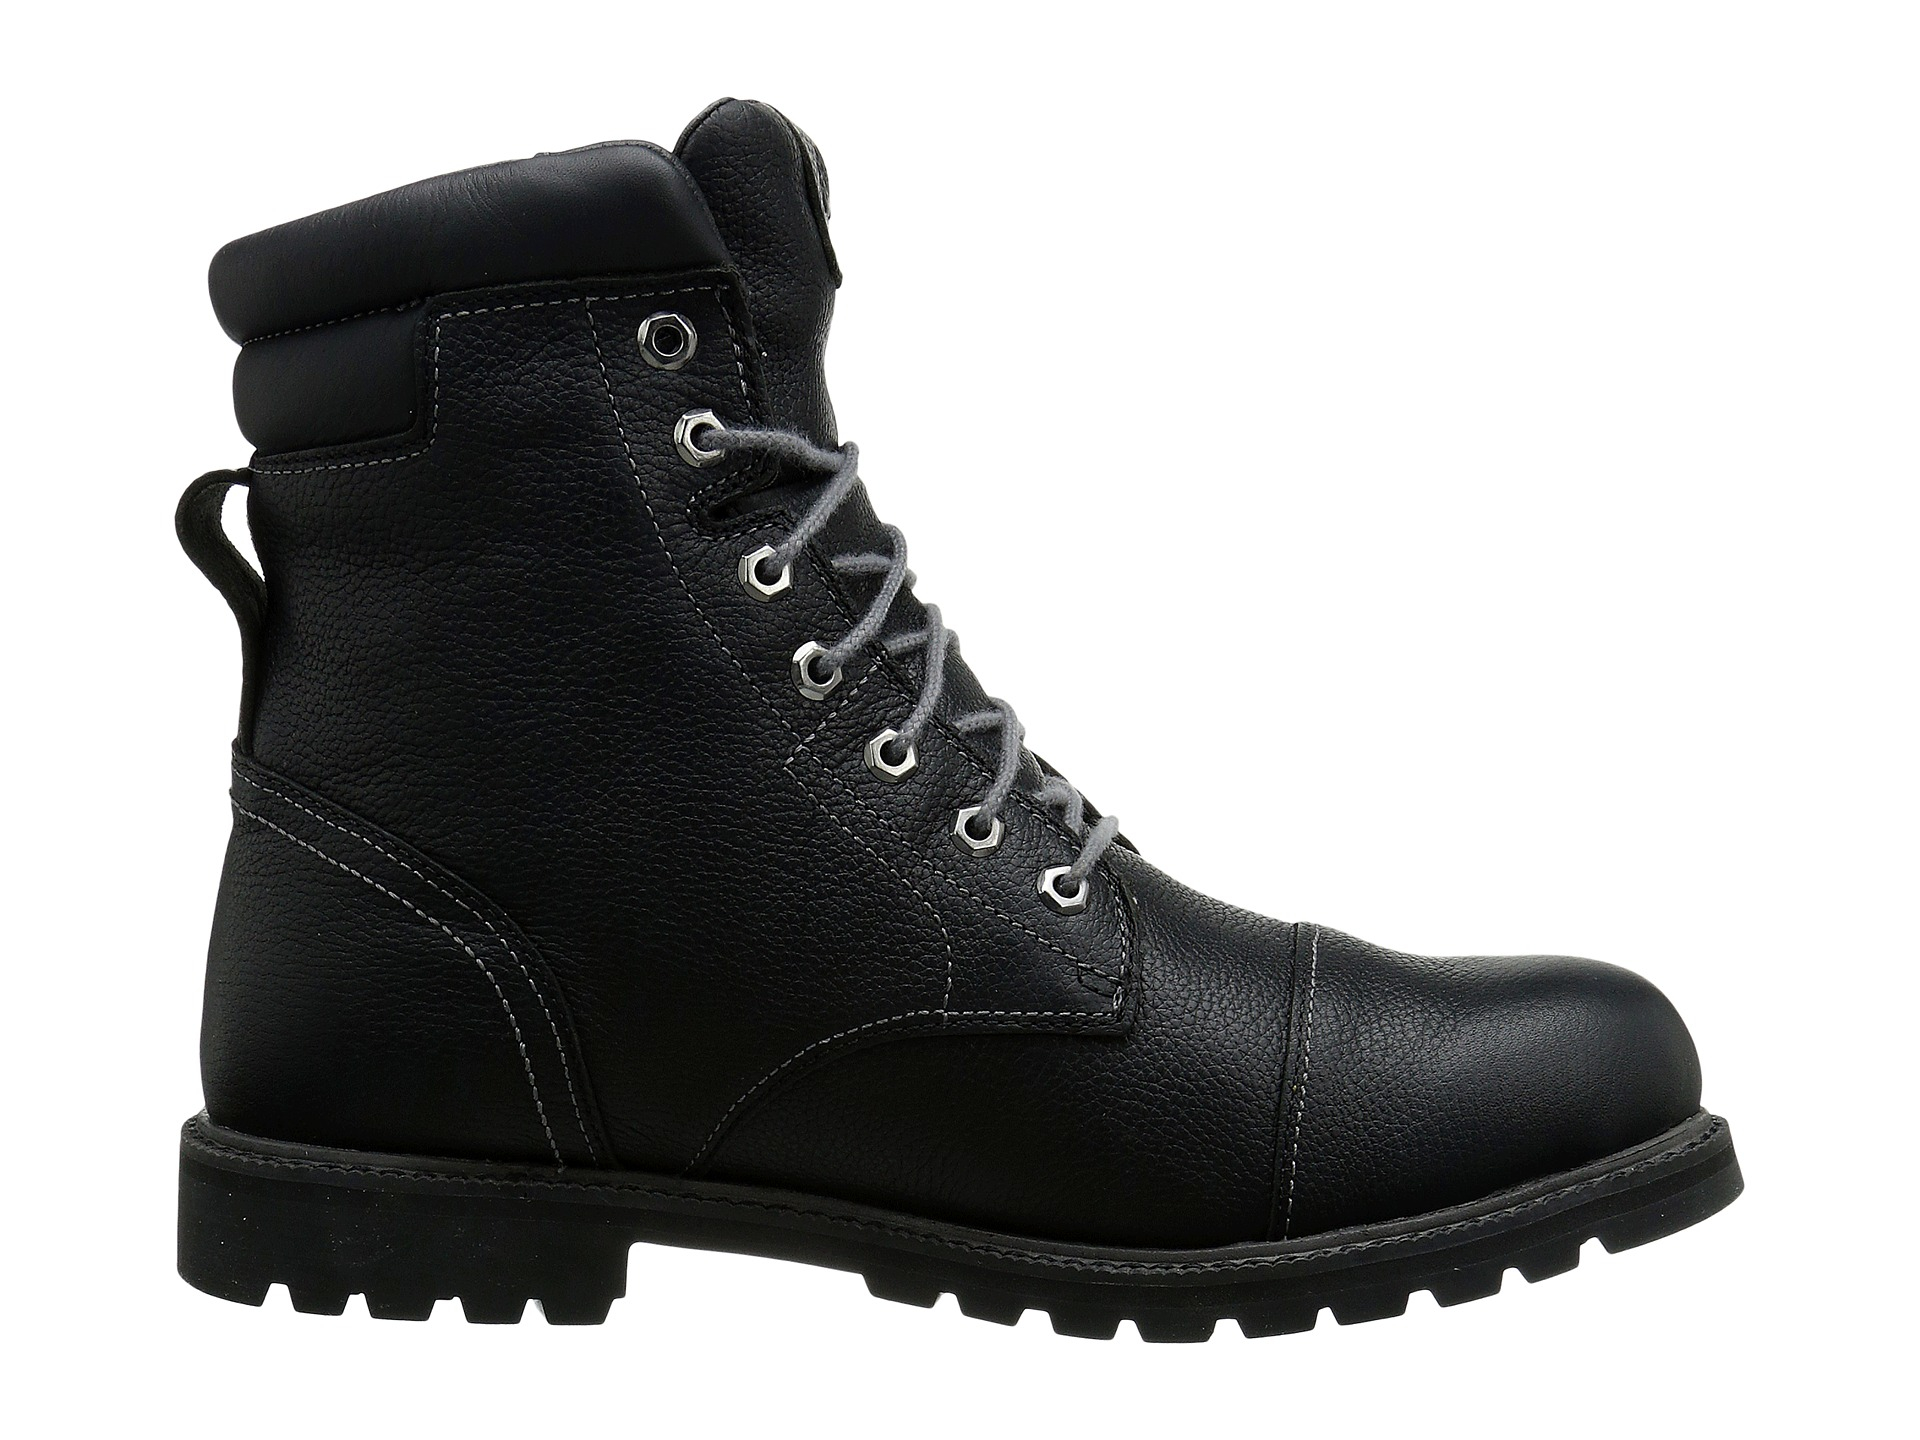 timberland insulated waterproof boots